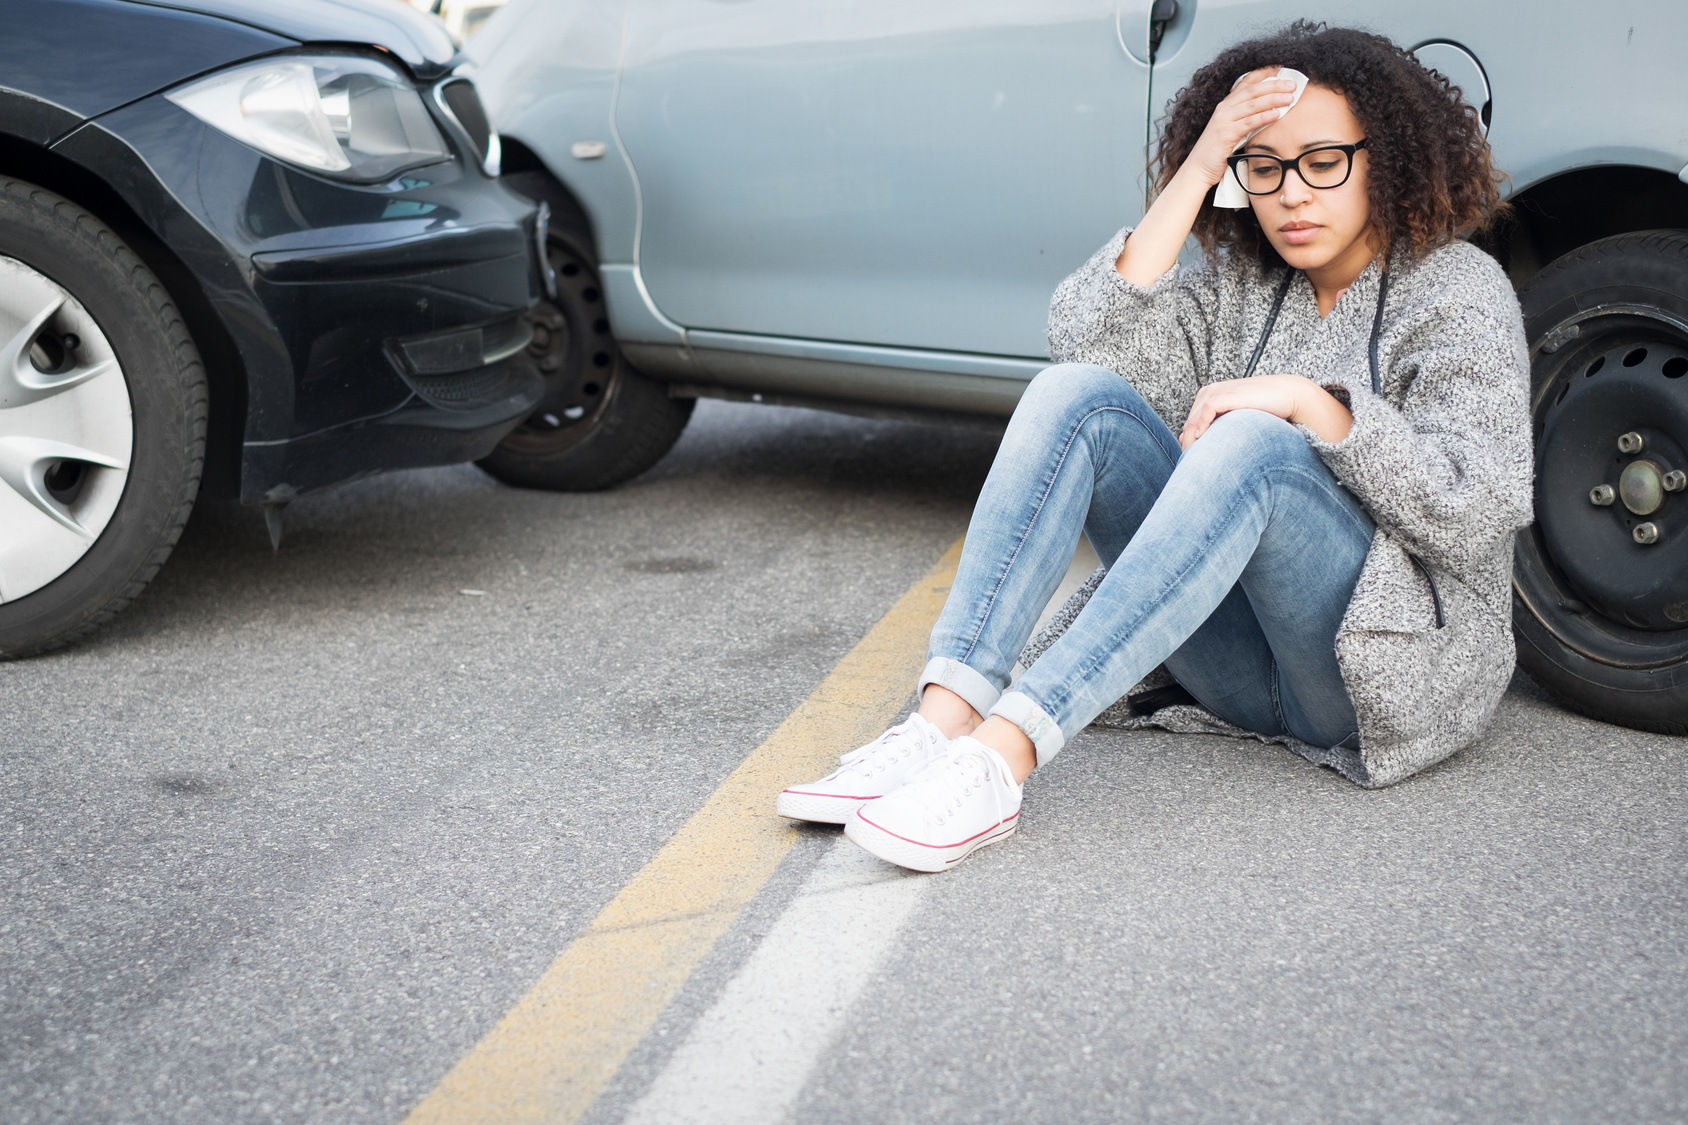 What to Look for If Searching for an Accident Lawyer